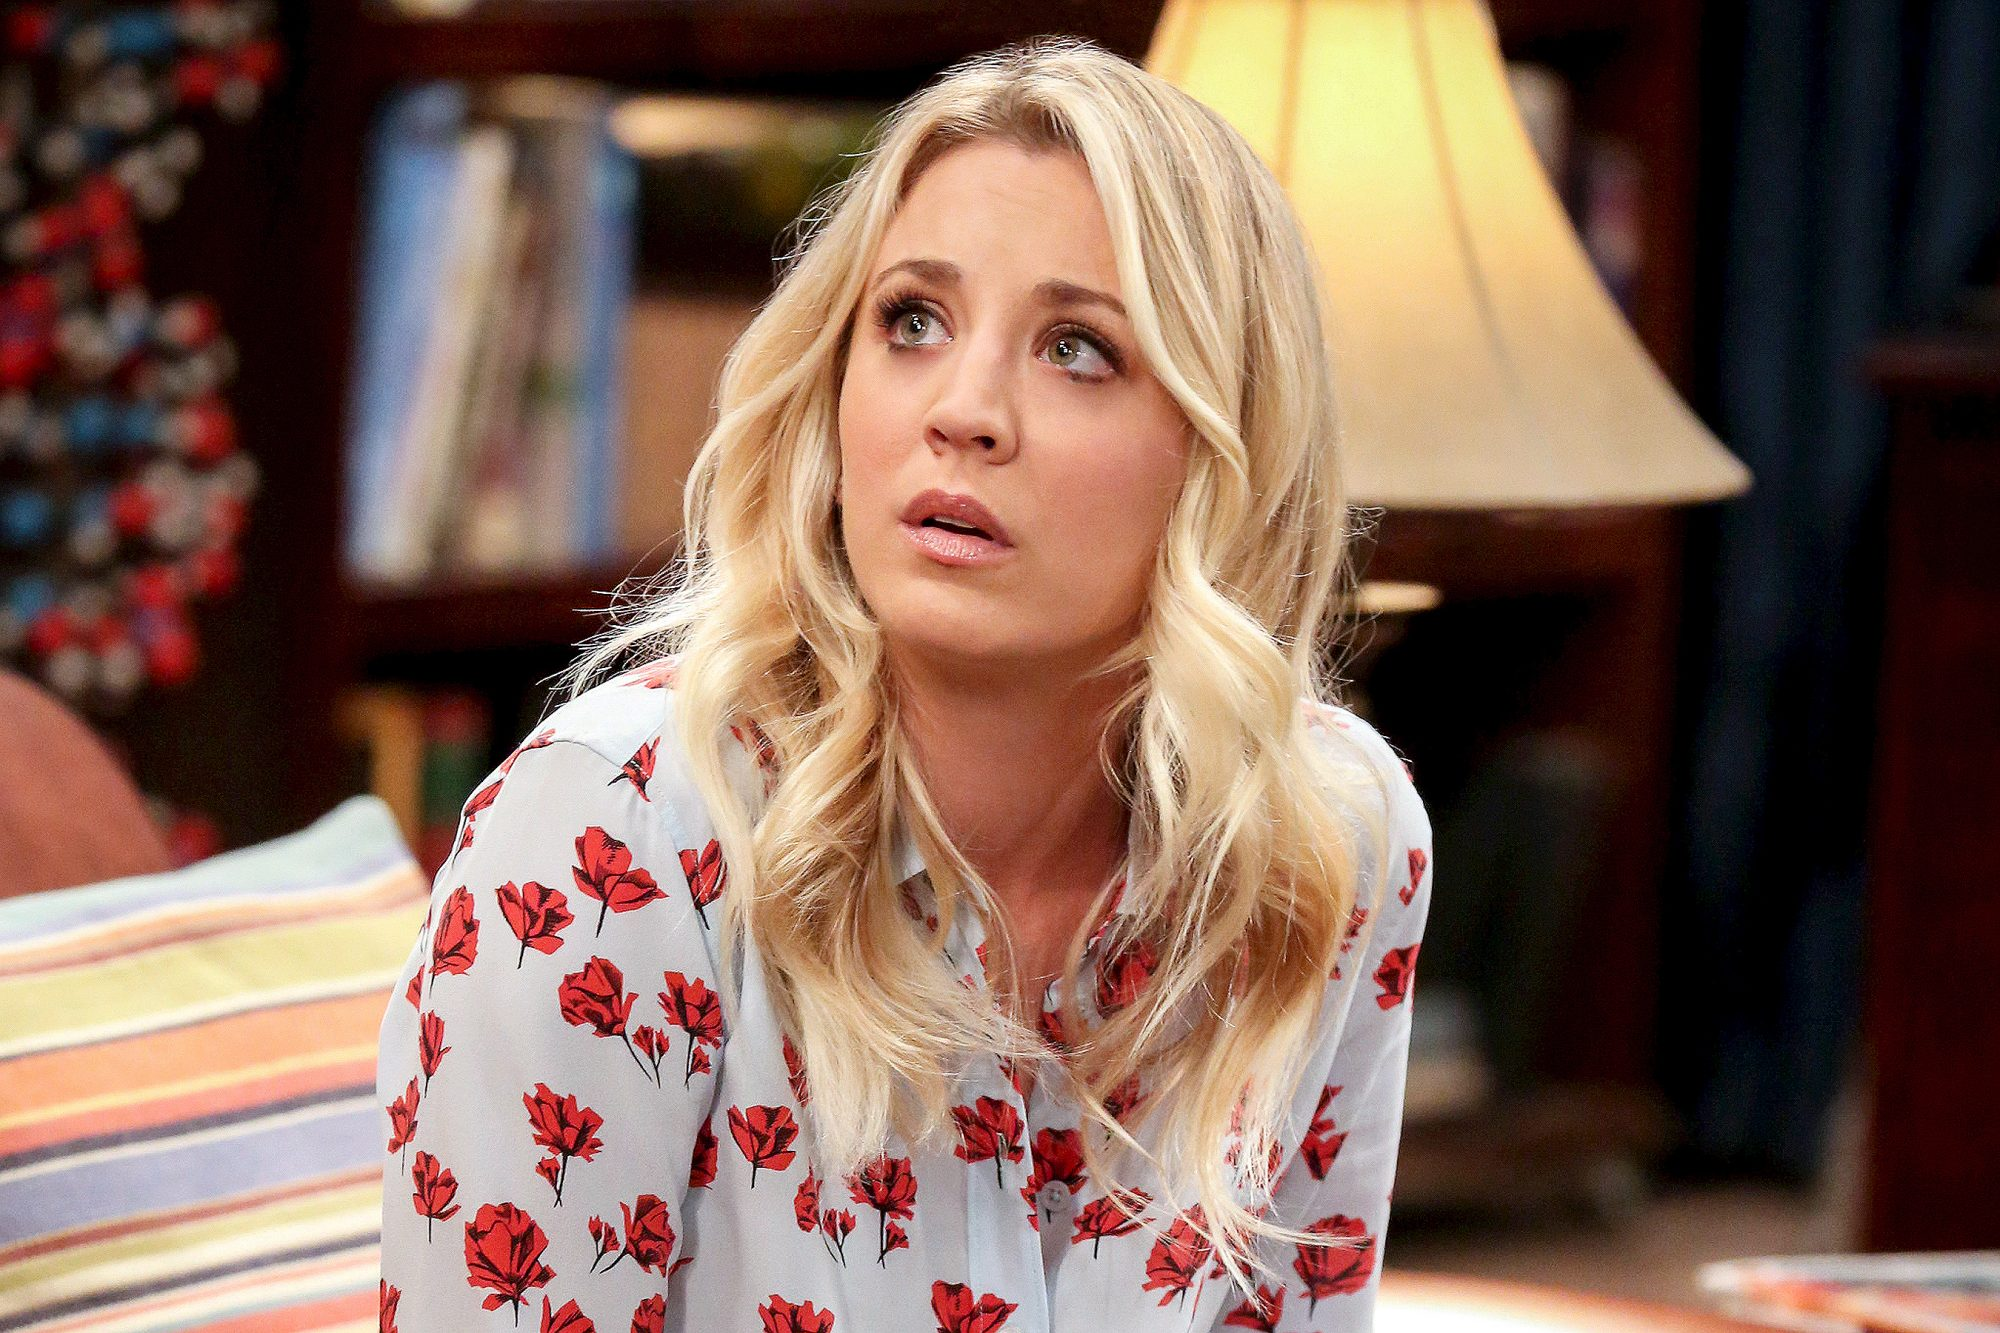 Kaley Cuoco in Big Bang Theory